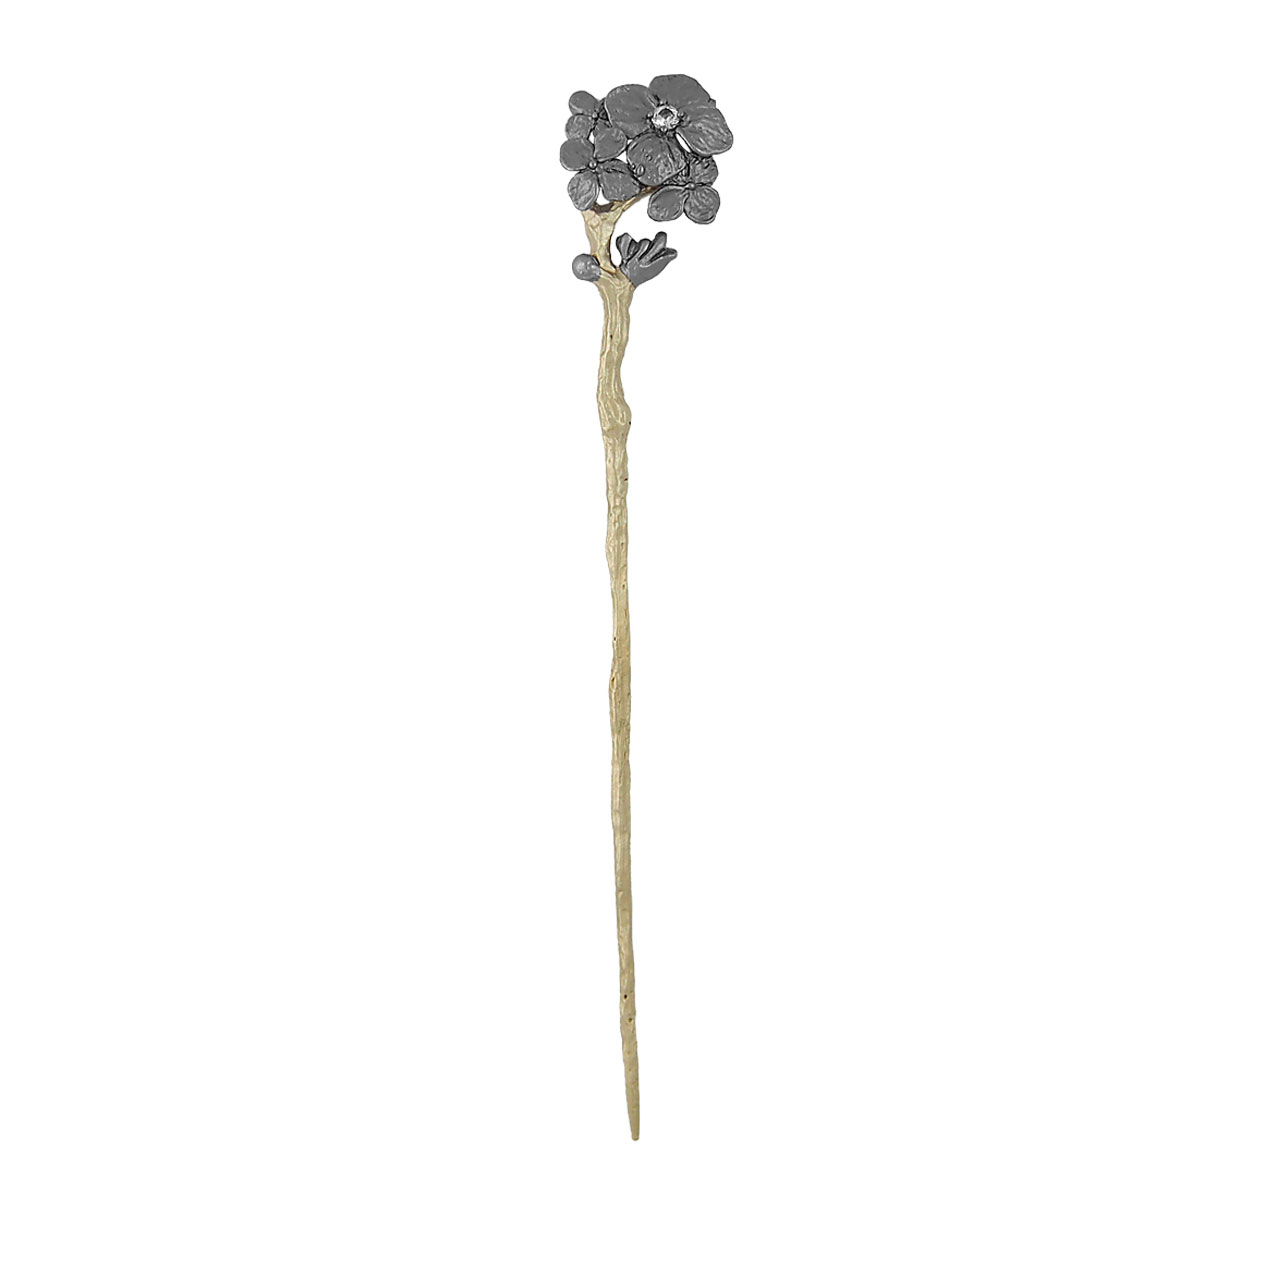 Bronze and gold hairpin / brooch